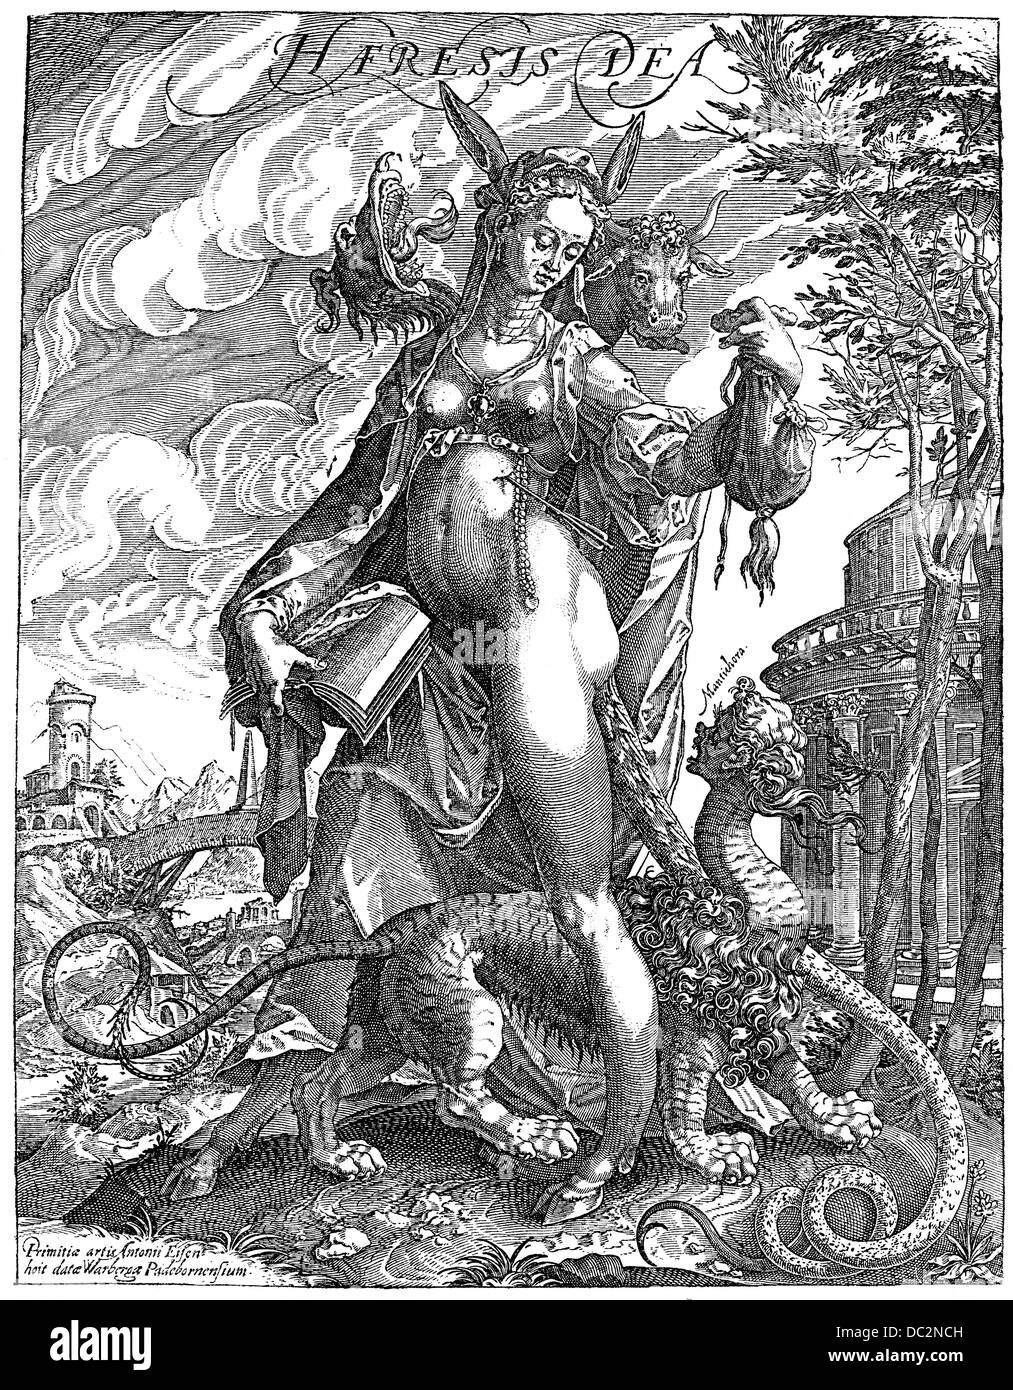 Pamphlet, 16th Century, satirical depiction of a goddess, heresy or heterodoxy, contradicts the teachings of Christian - Stock Image